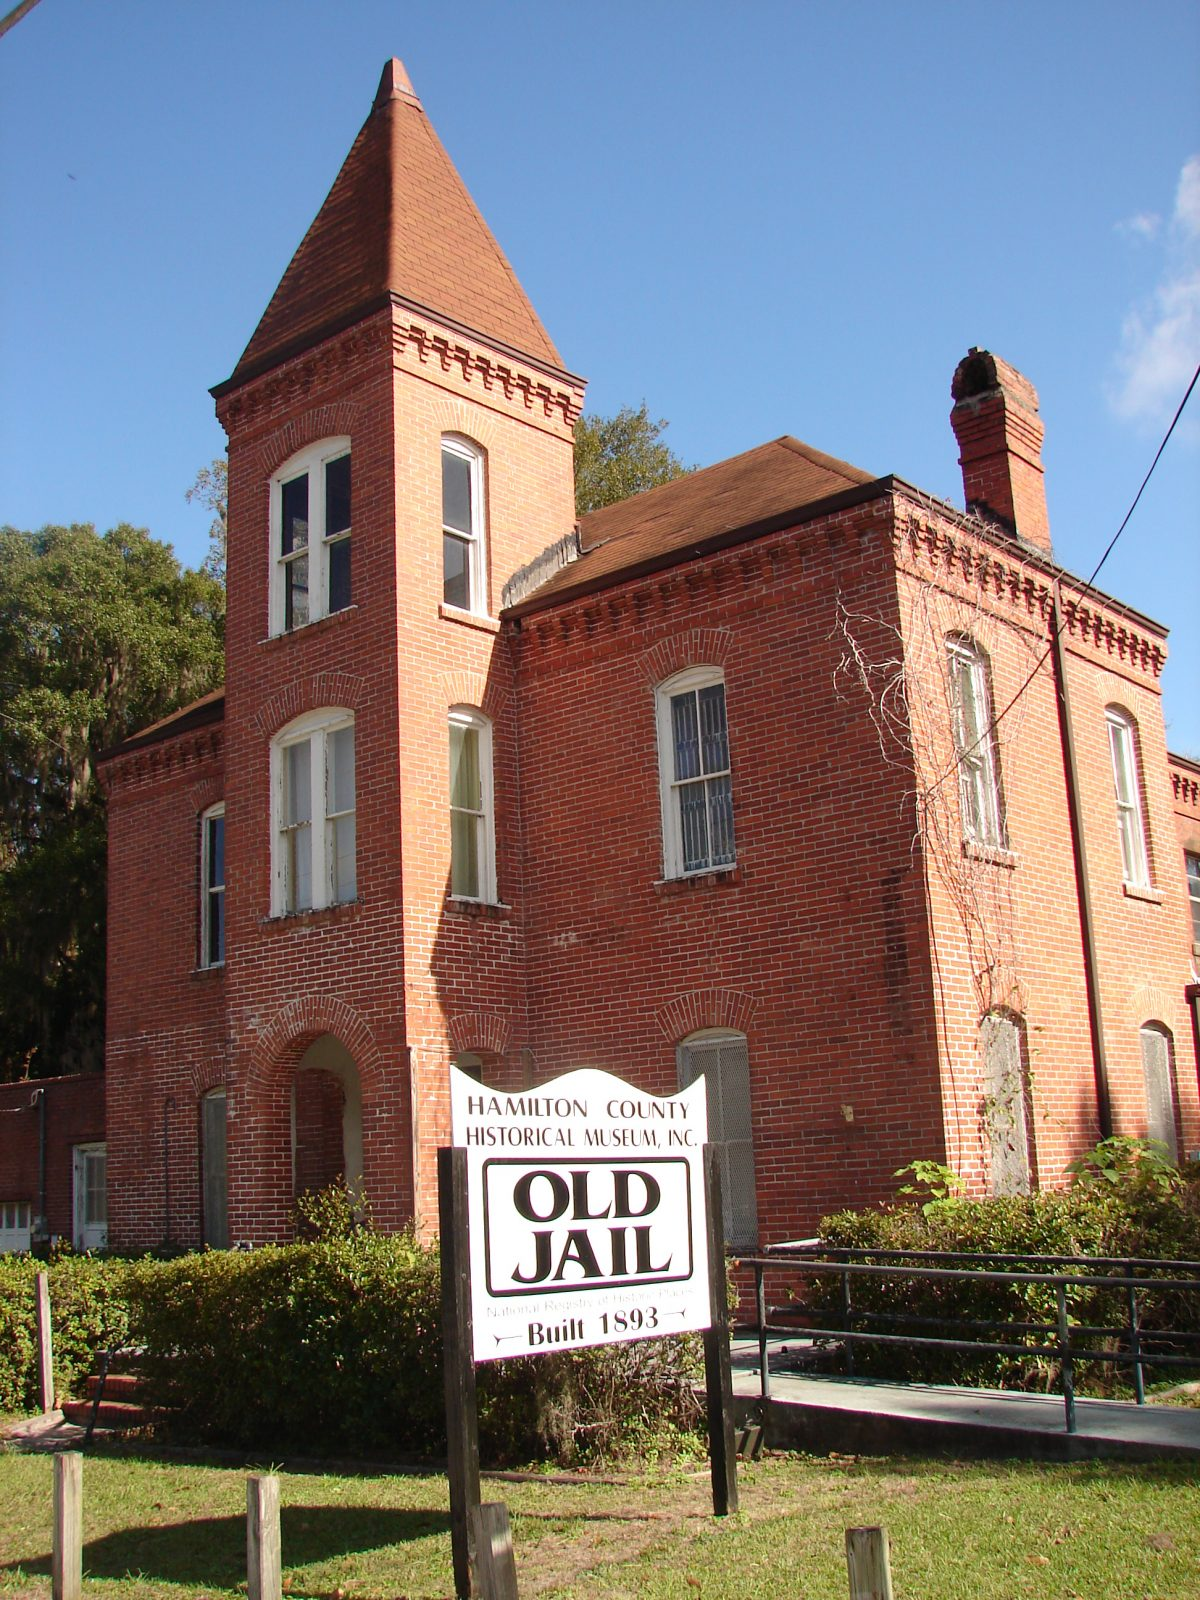 Hamilton County Old Jail Museum